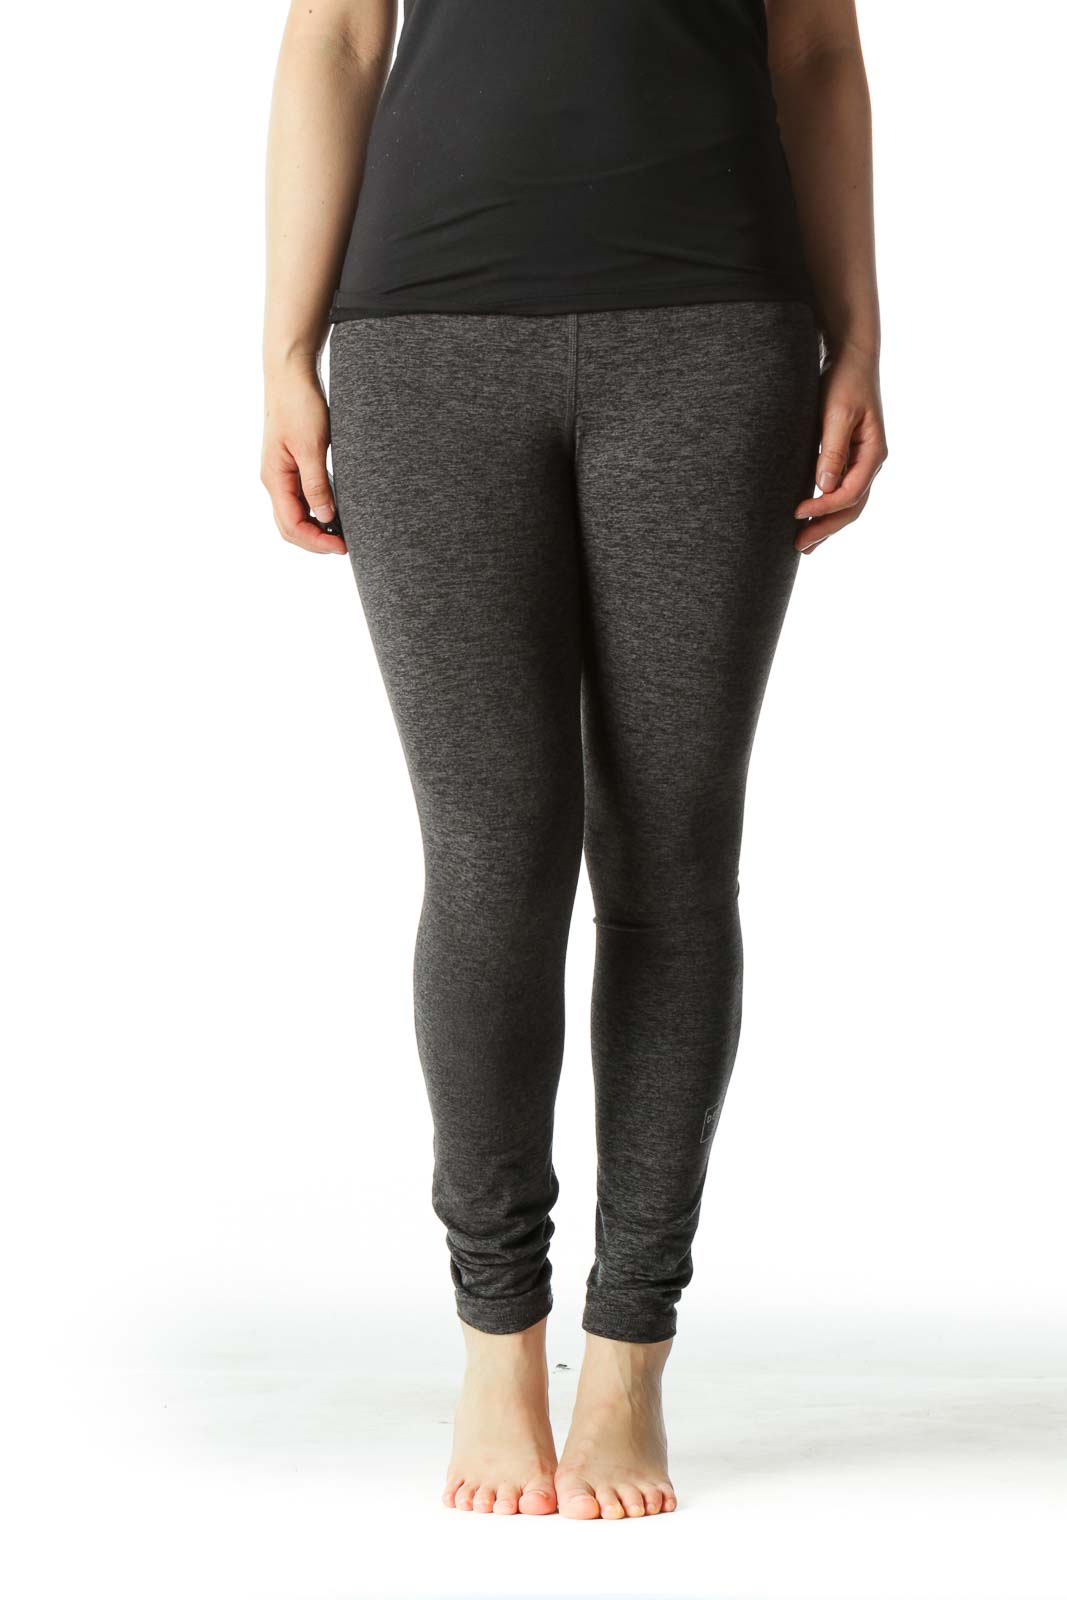 Gray Cropped Yoga Pant with Inspirational Word